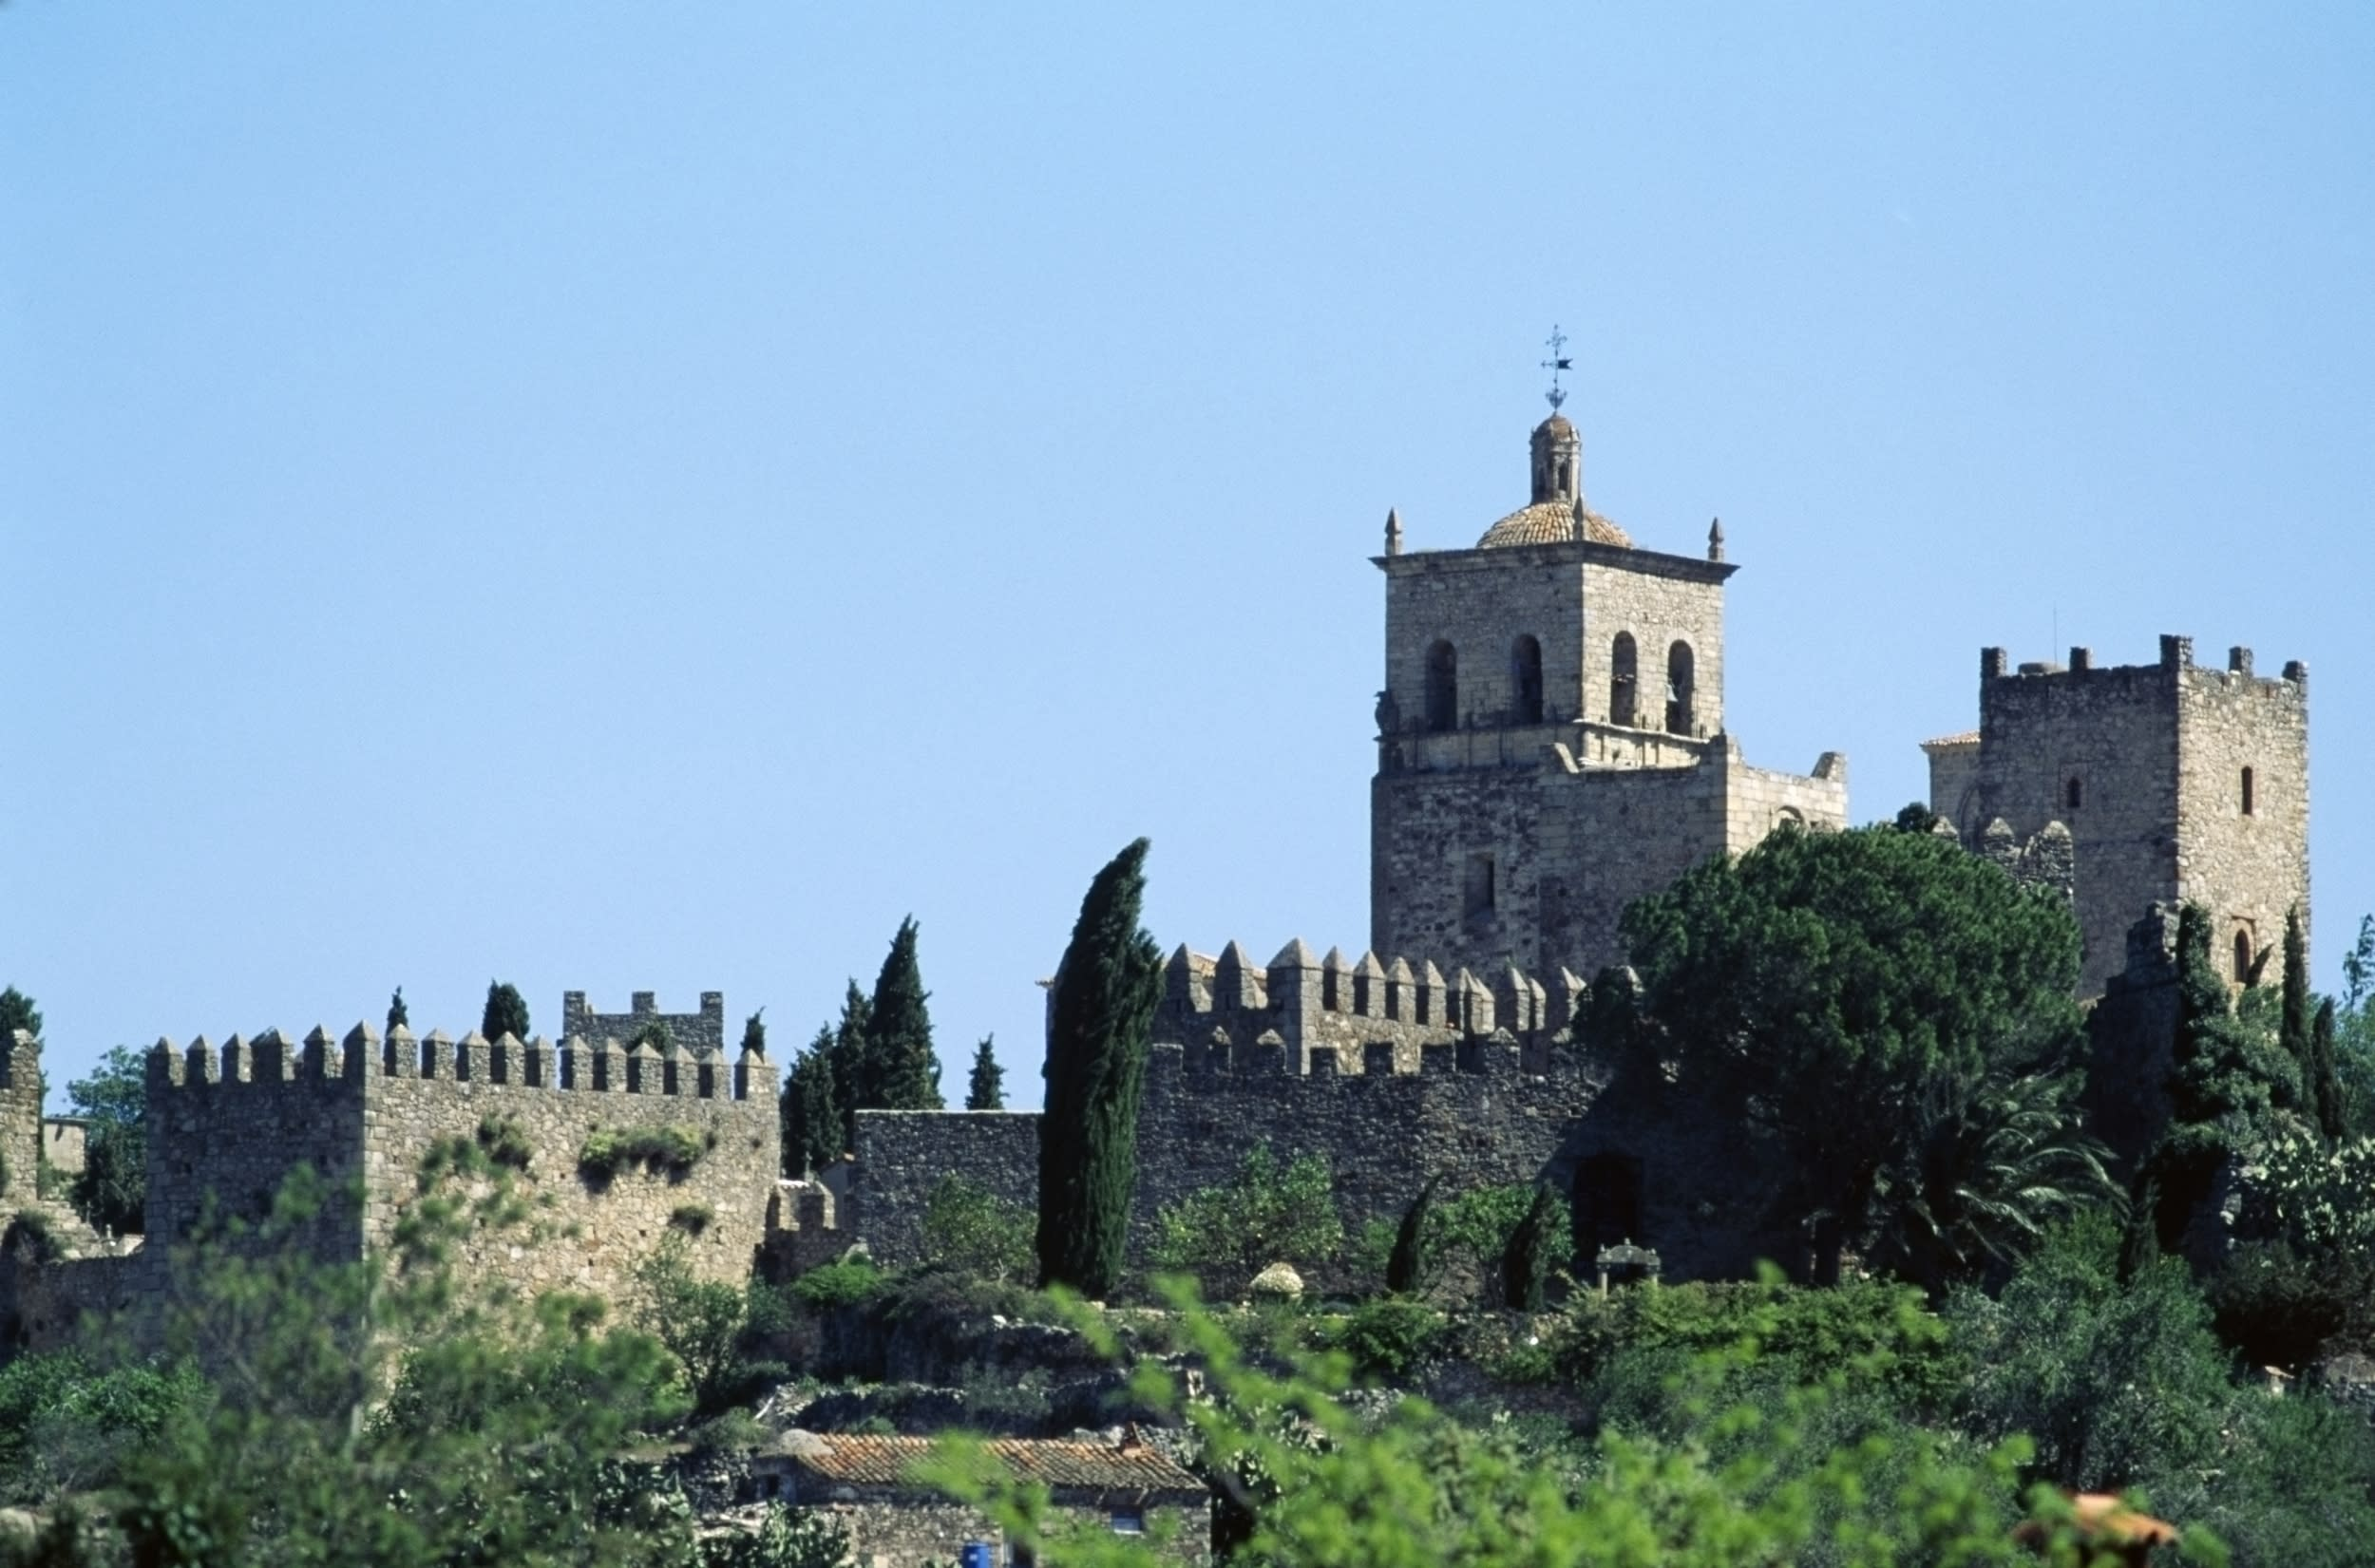 """<p><strong>GOT location</strong>: Casterly Rock</p>  <p><strong>Real life location</strong>: Trujillo Castle, Extremadura, Spain</p>  <p>Stop by the home city of the Lannisters by trekking toTrujillo Castle in Extremadura Spain.</p>  <p><strong><a href=""""https://fave.co/2IDJovV"""">Book your trip.</a></strong></p>"""